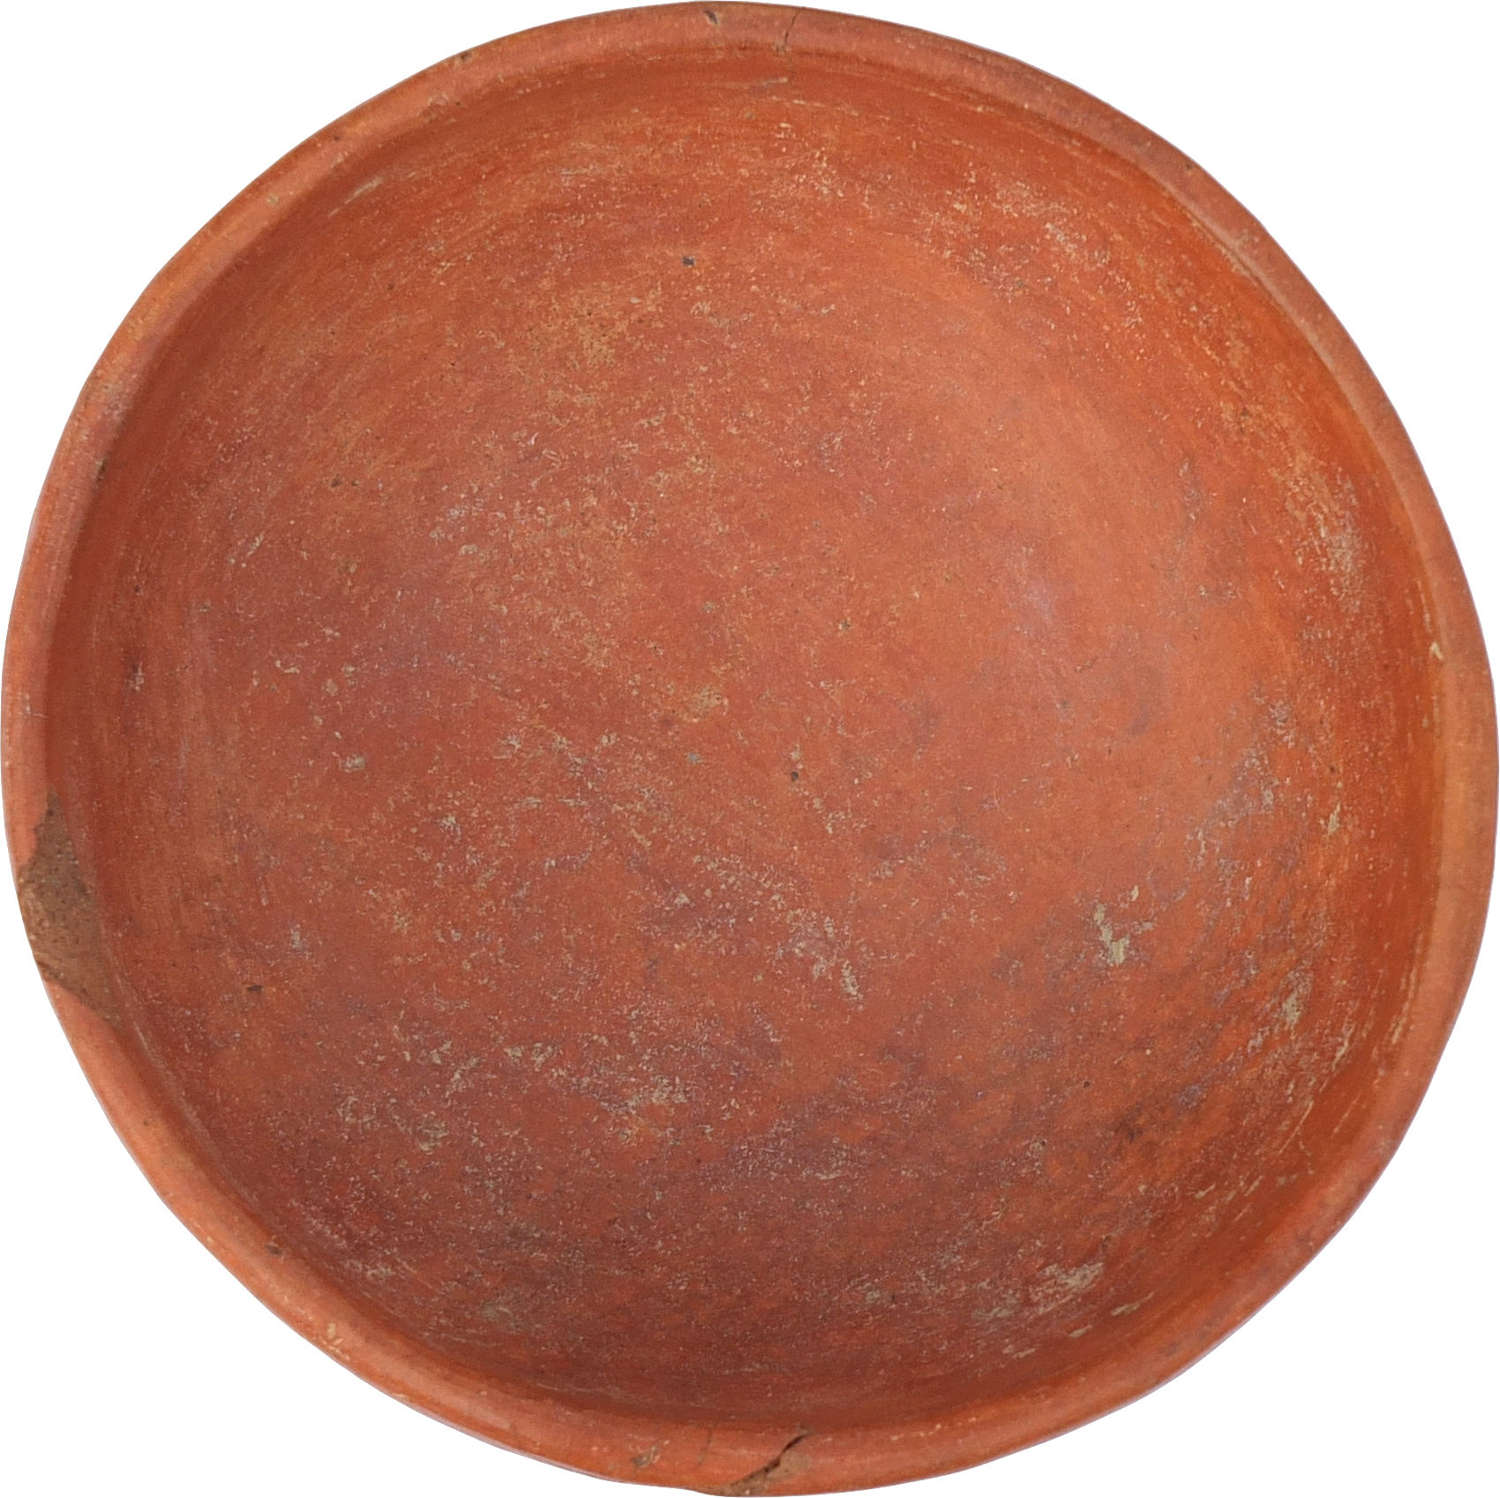 A Mexican red-slipped red ware bowl, c. 1st Millennium A.D.